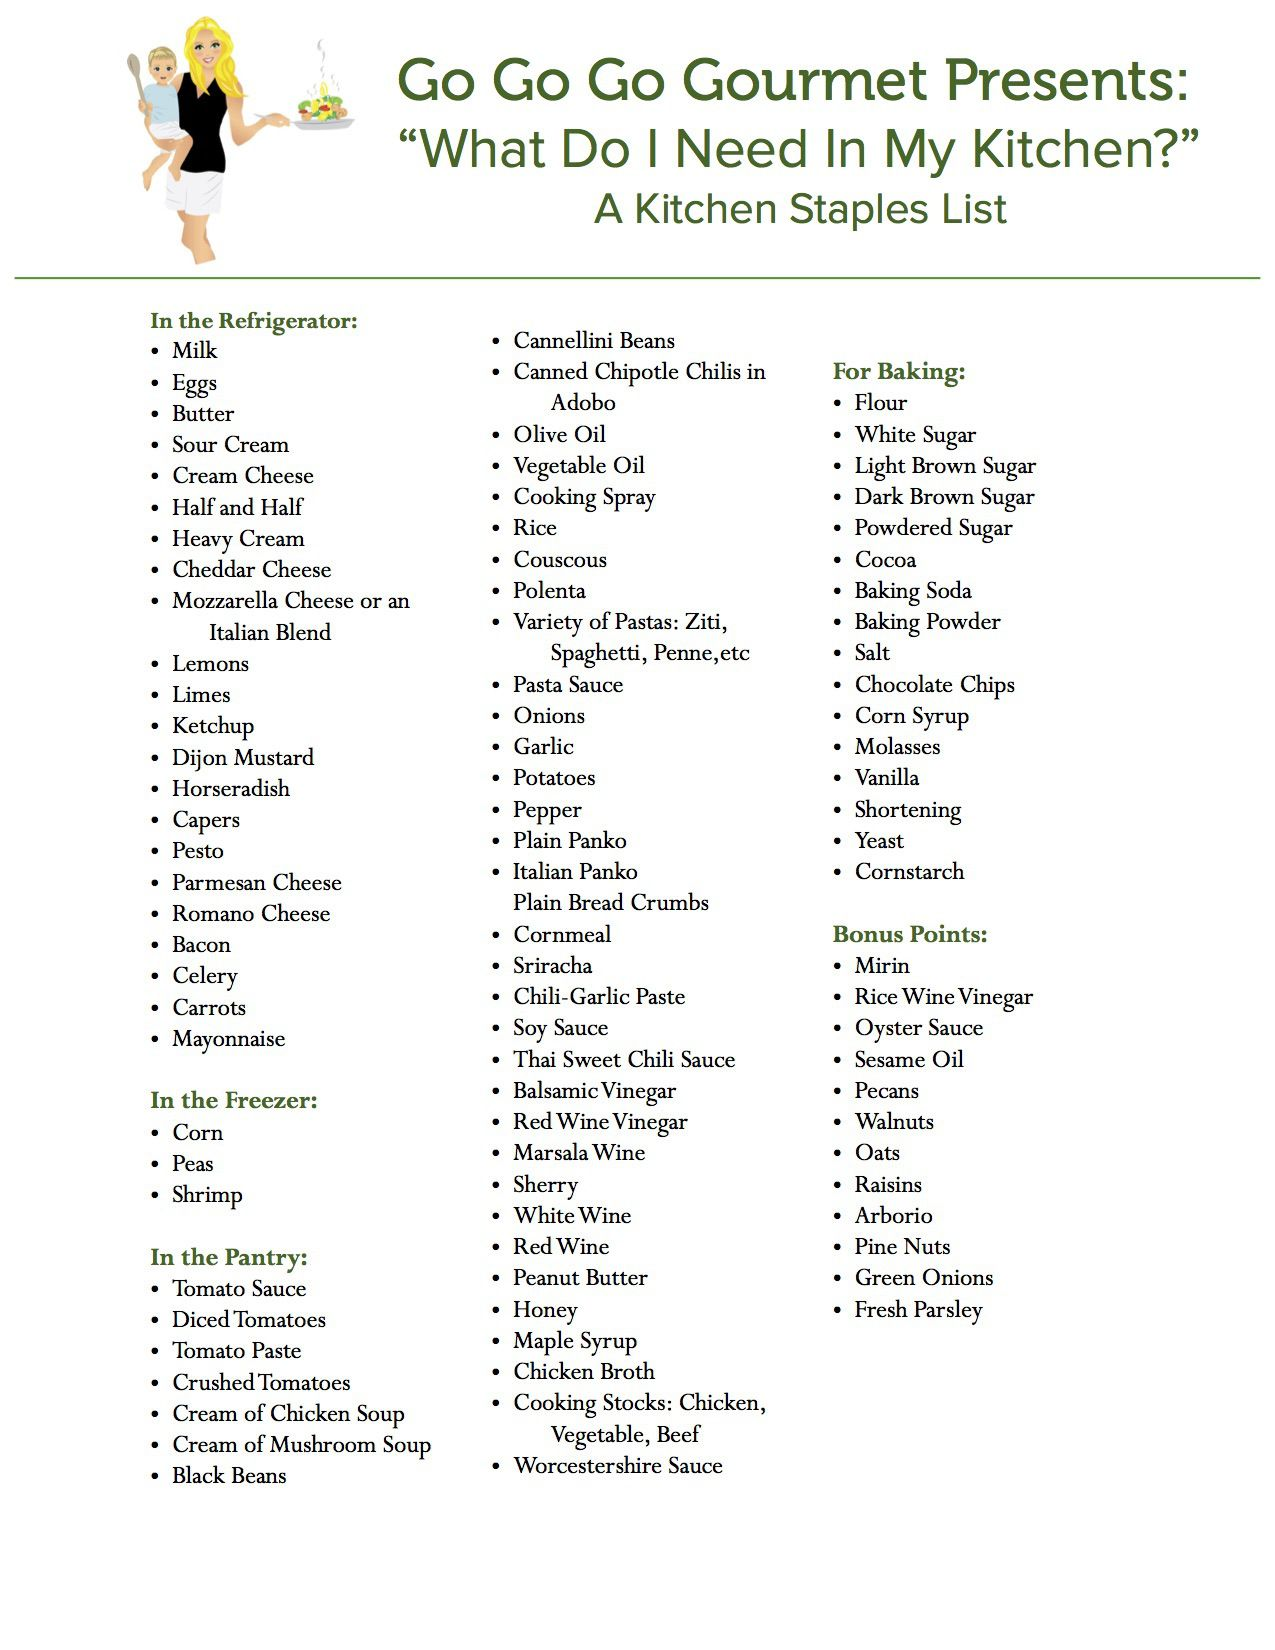 GGGG Kitchen Staples | Cooking tips and great ideas! | Pinterest ...